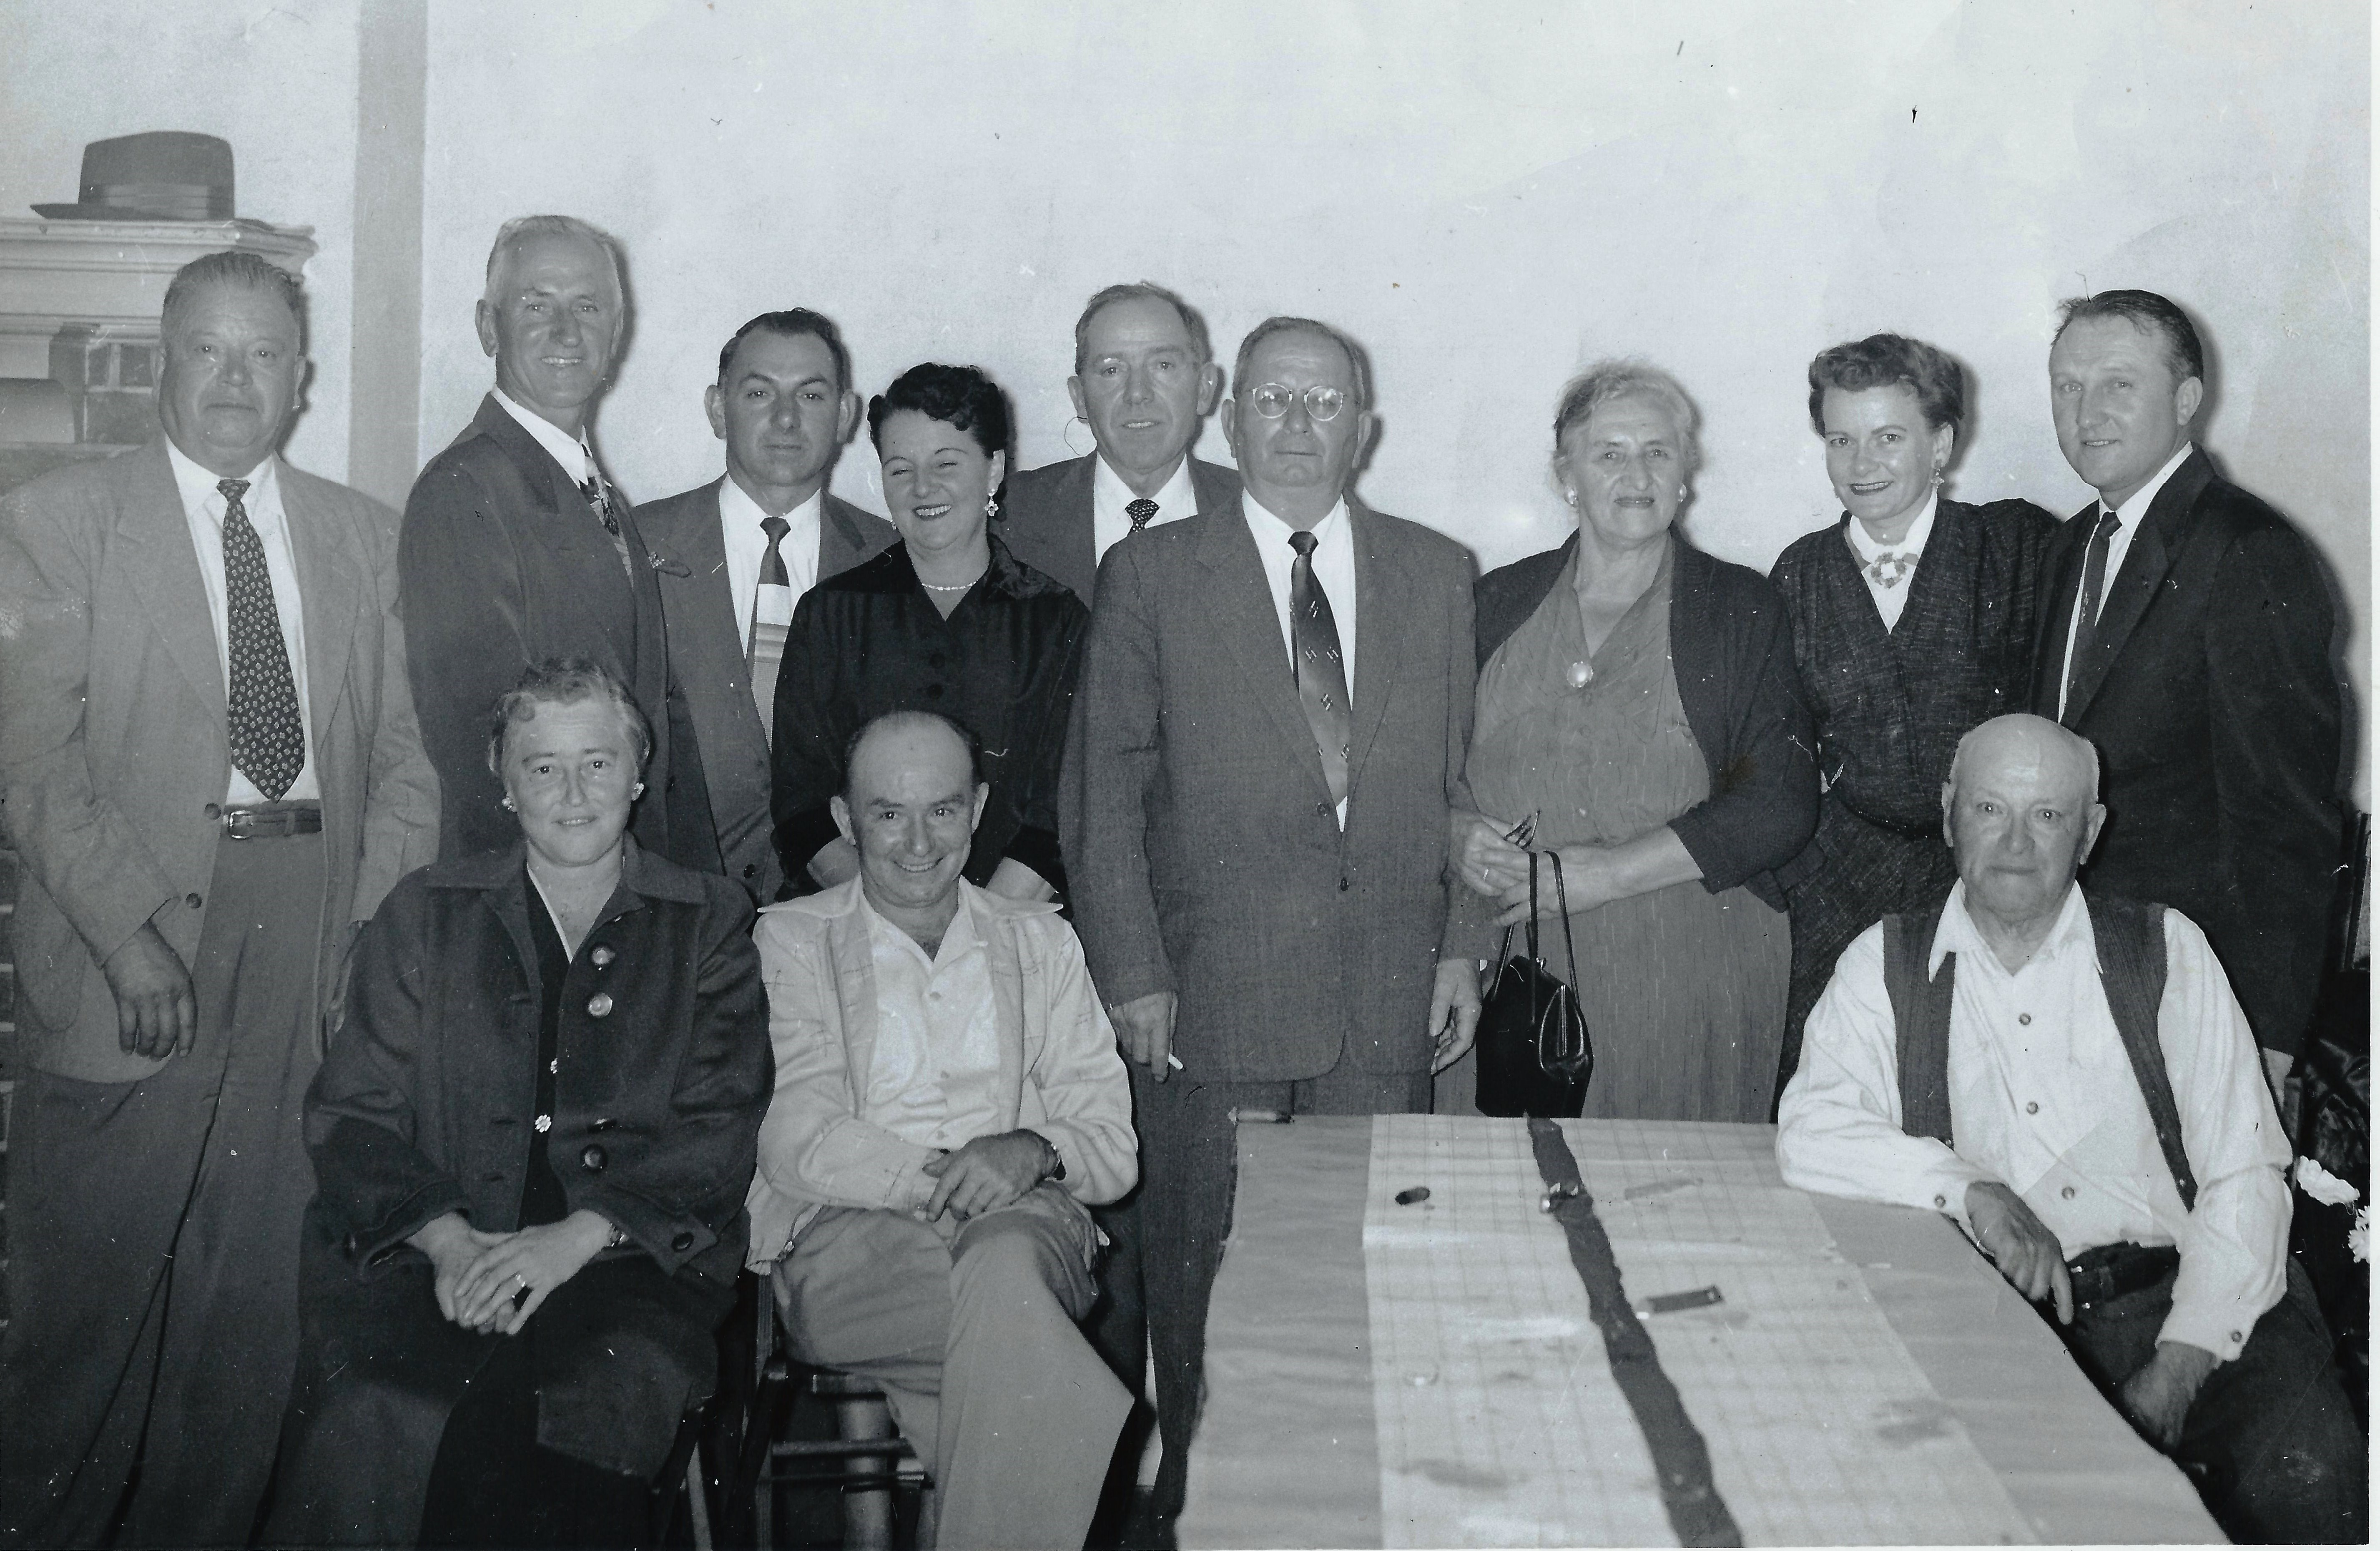 IACC Officers 1930's